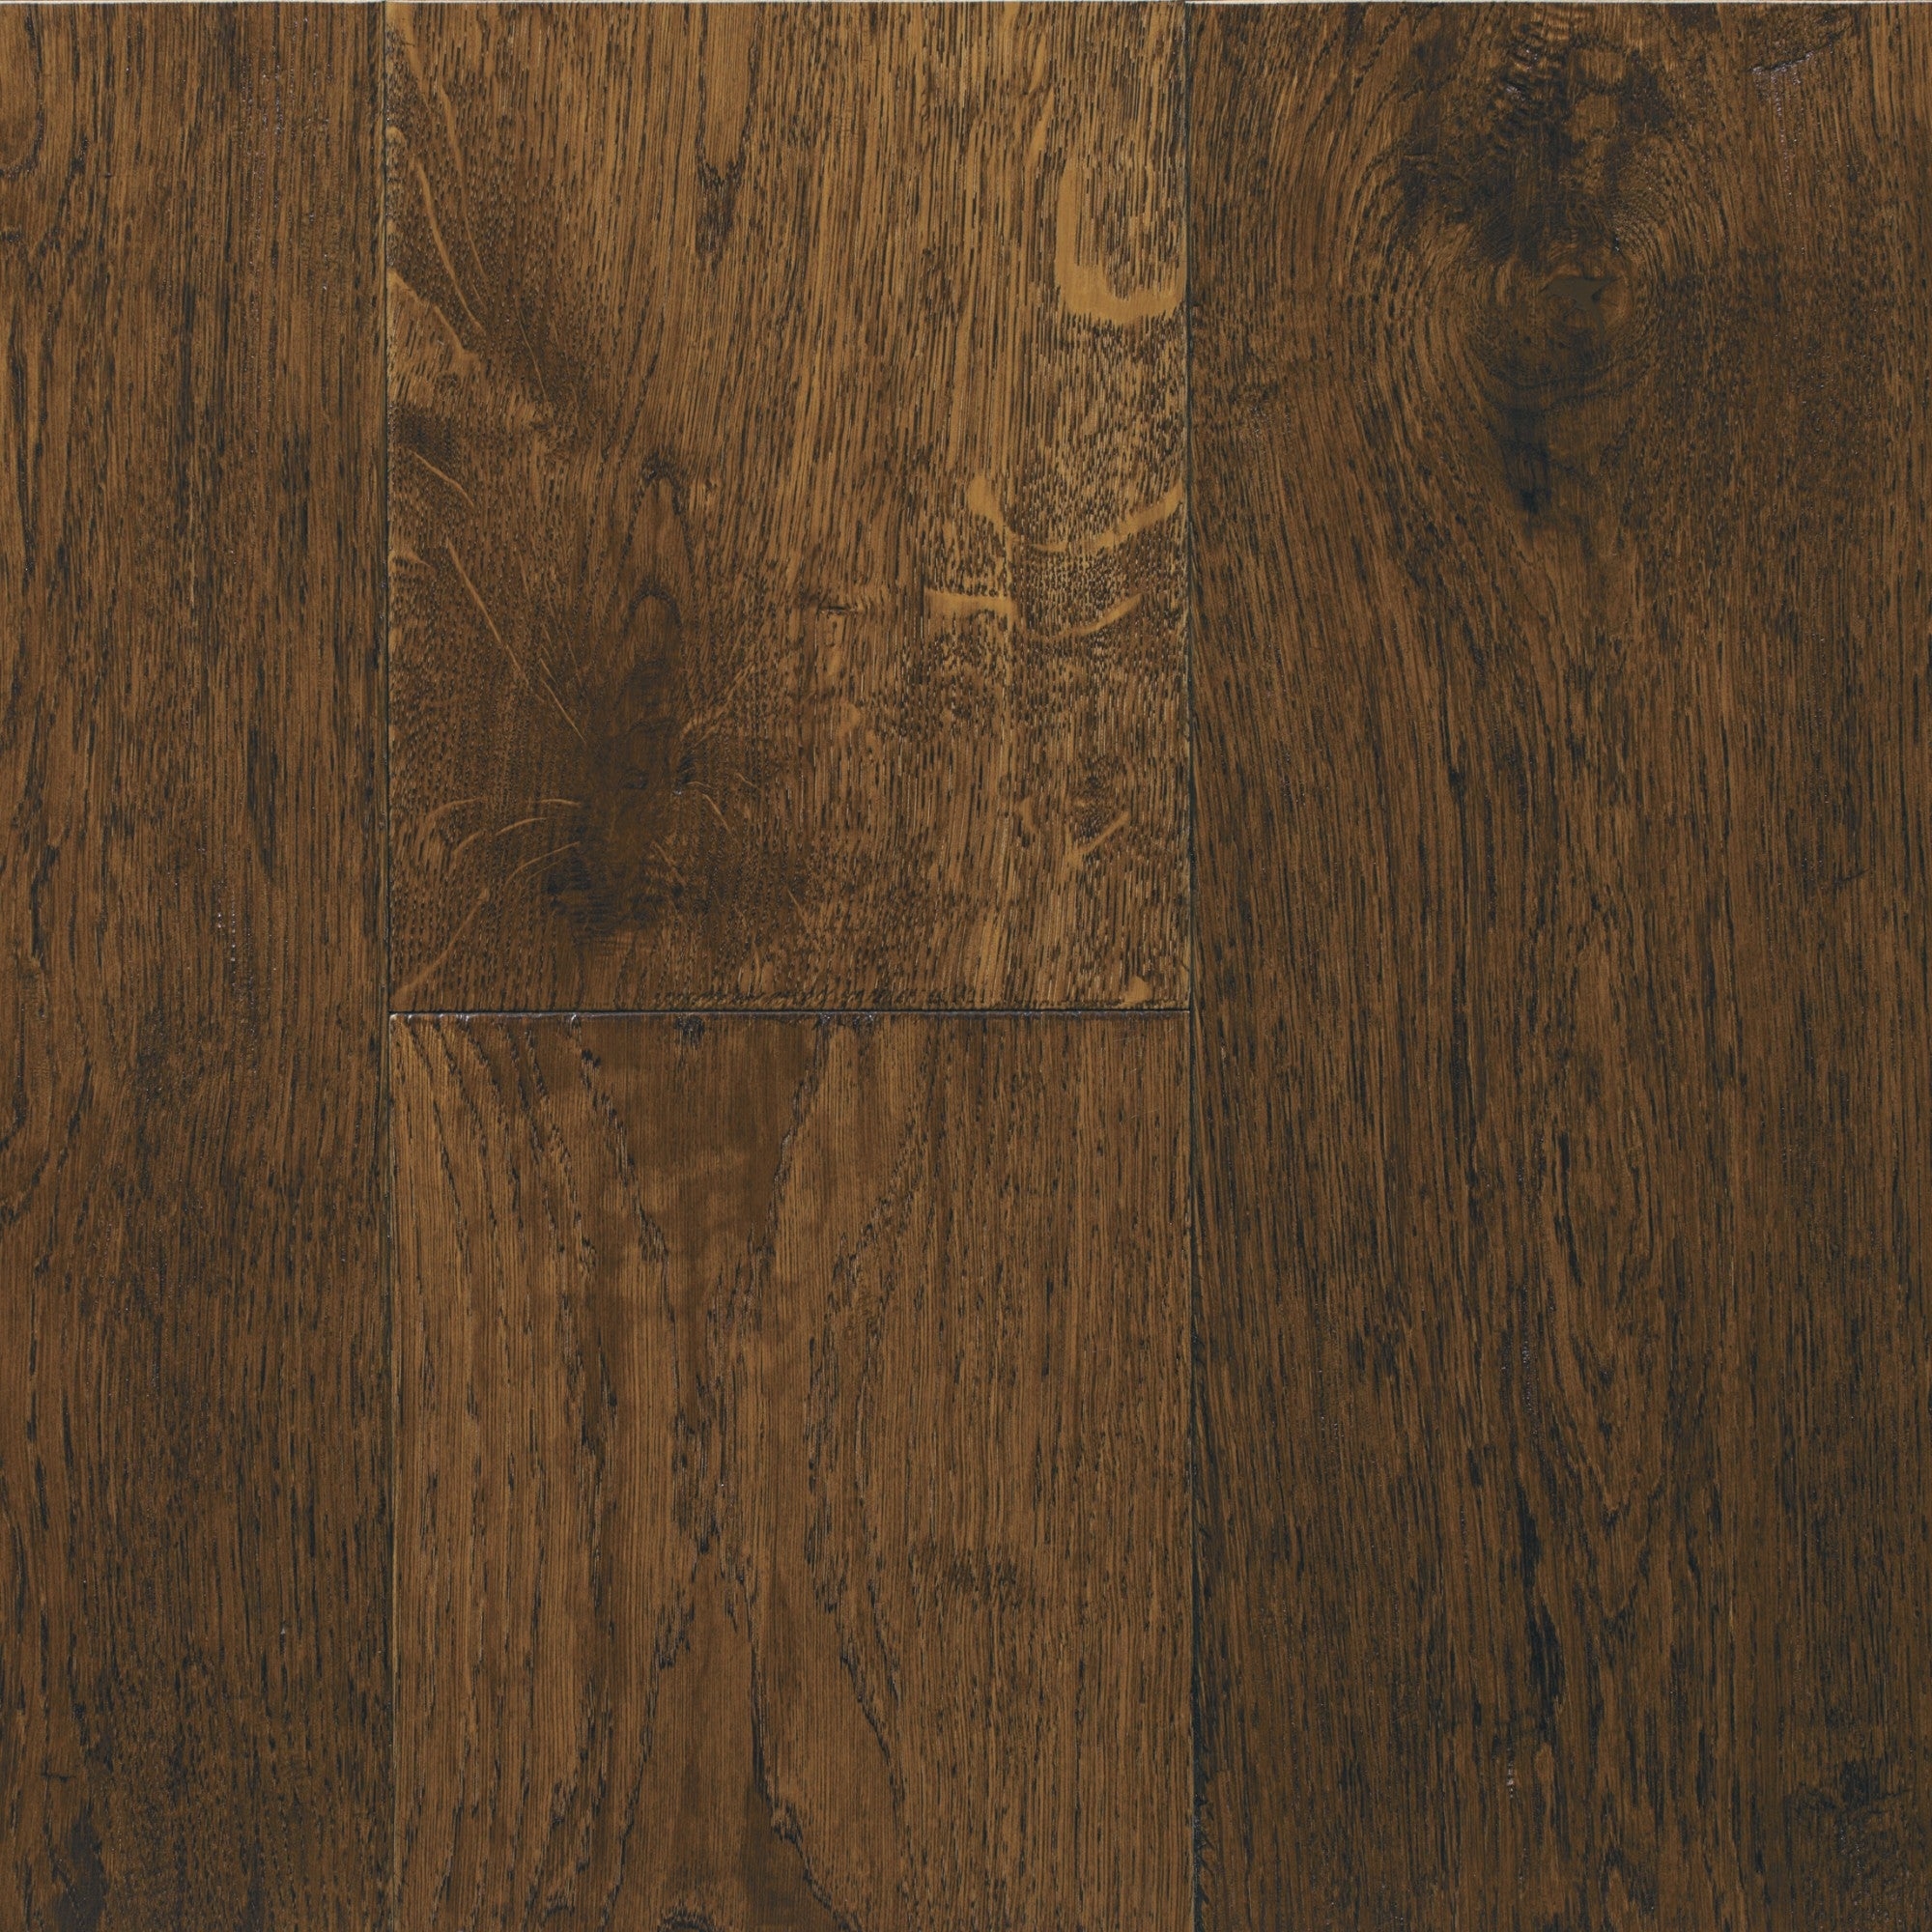 Handscraped - White Oak Buckingham